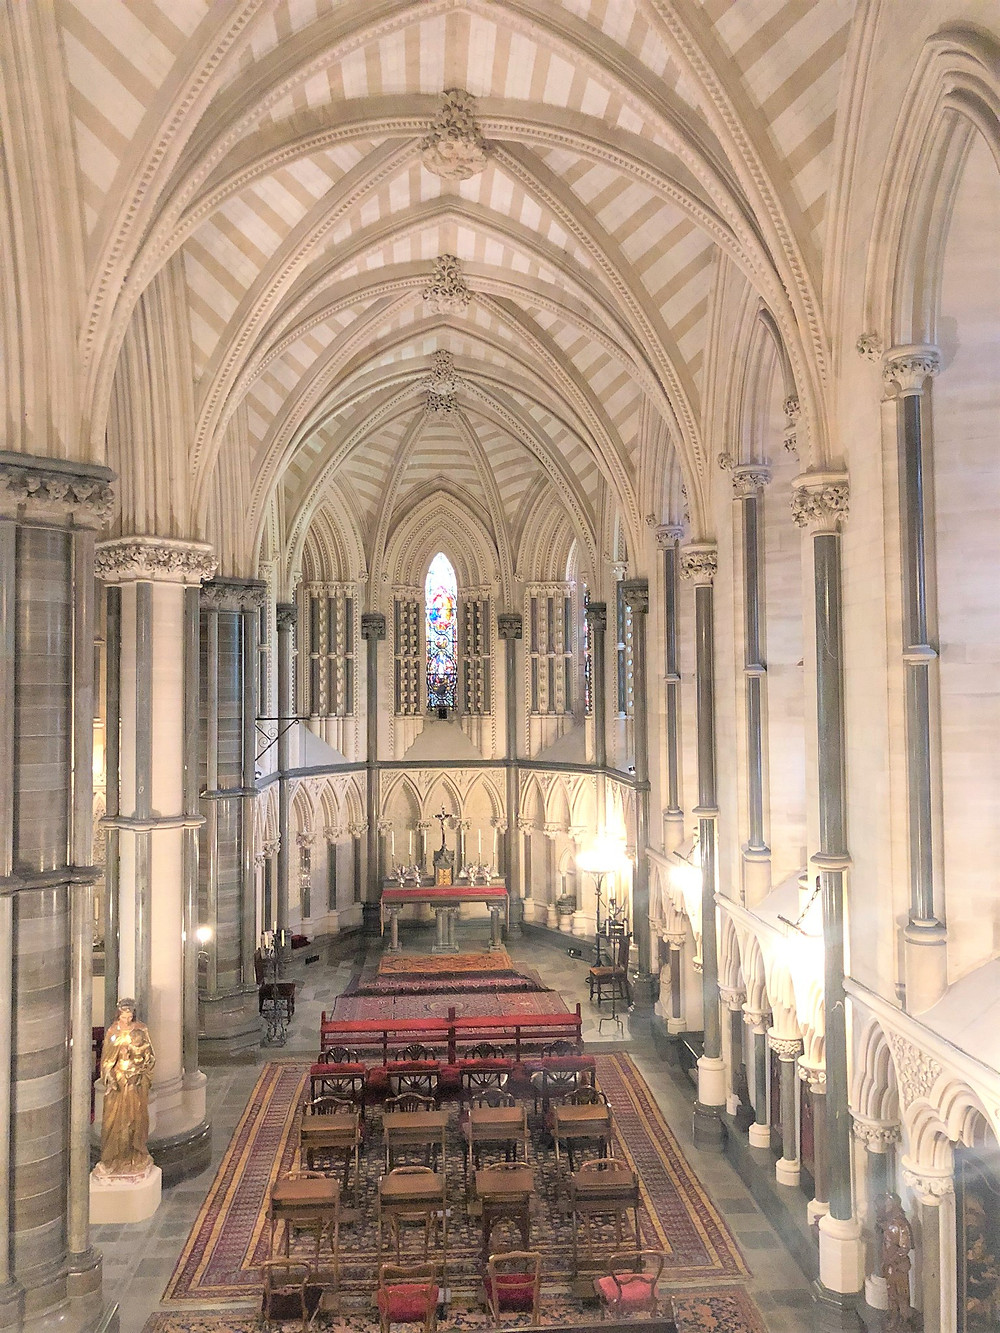 The Chapel of the Howard family in Arundel Castle